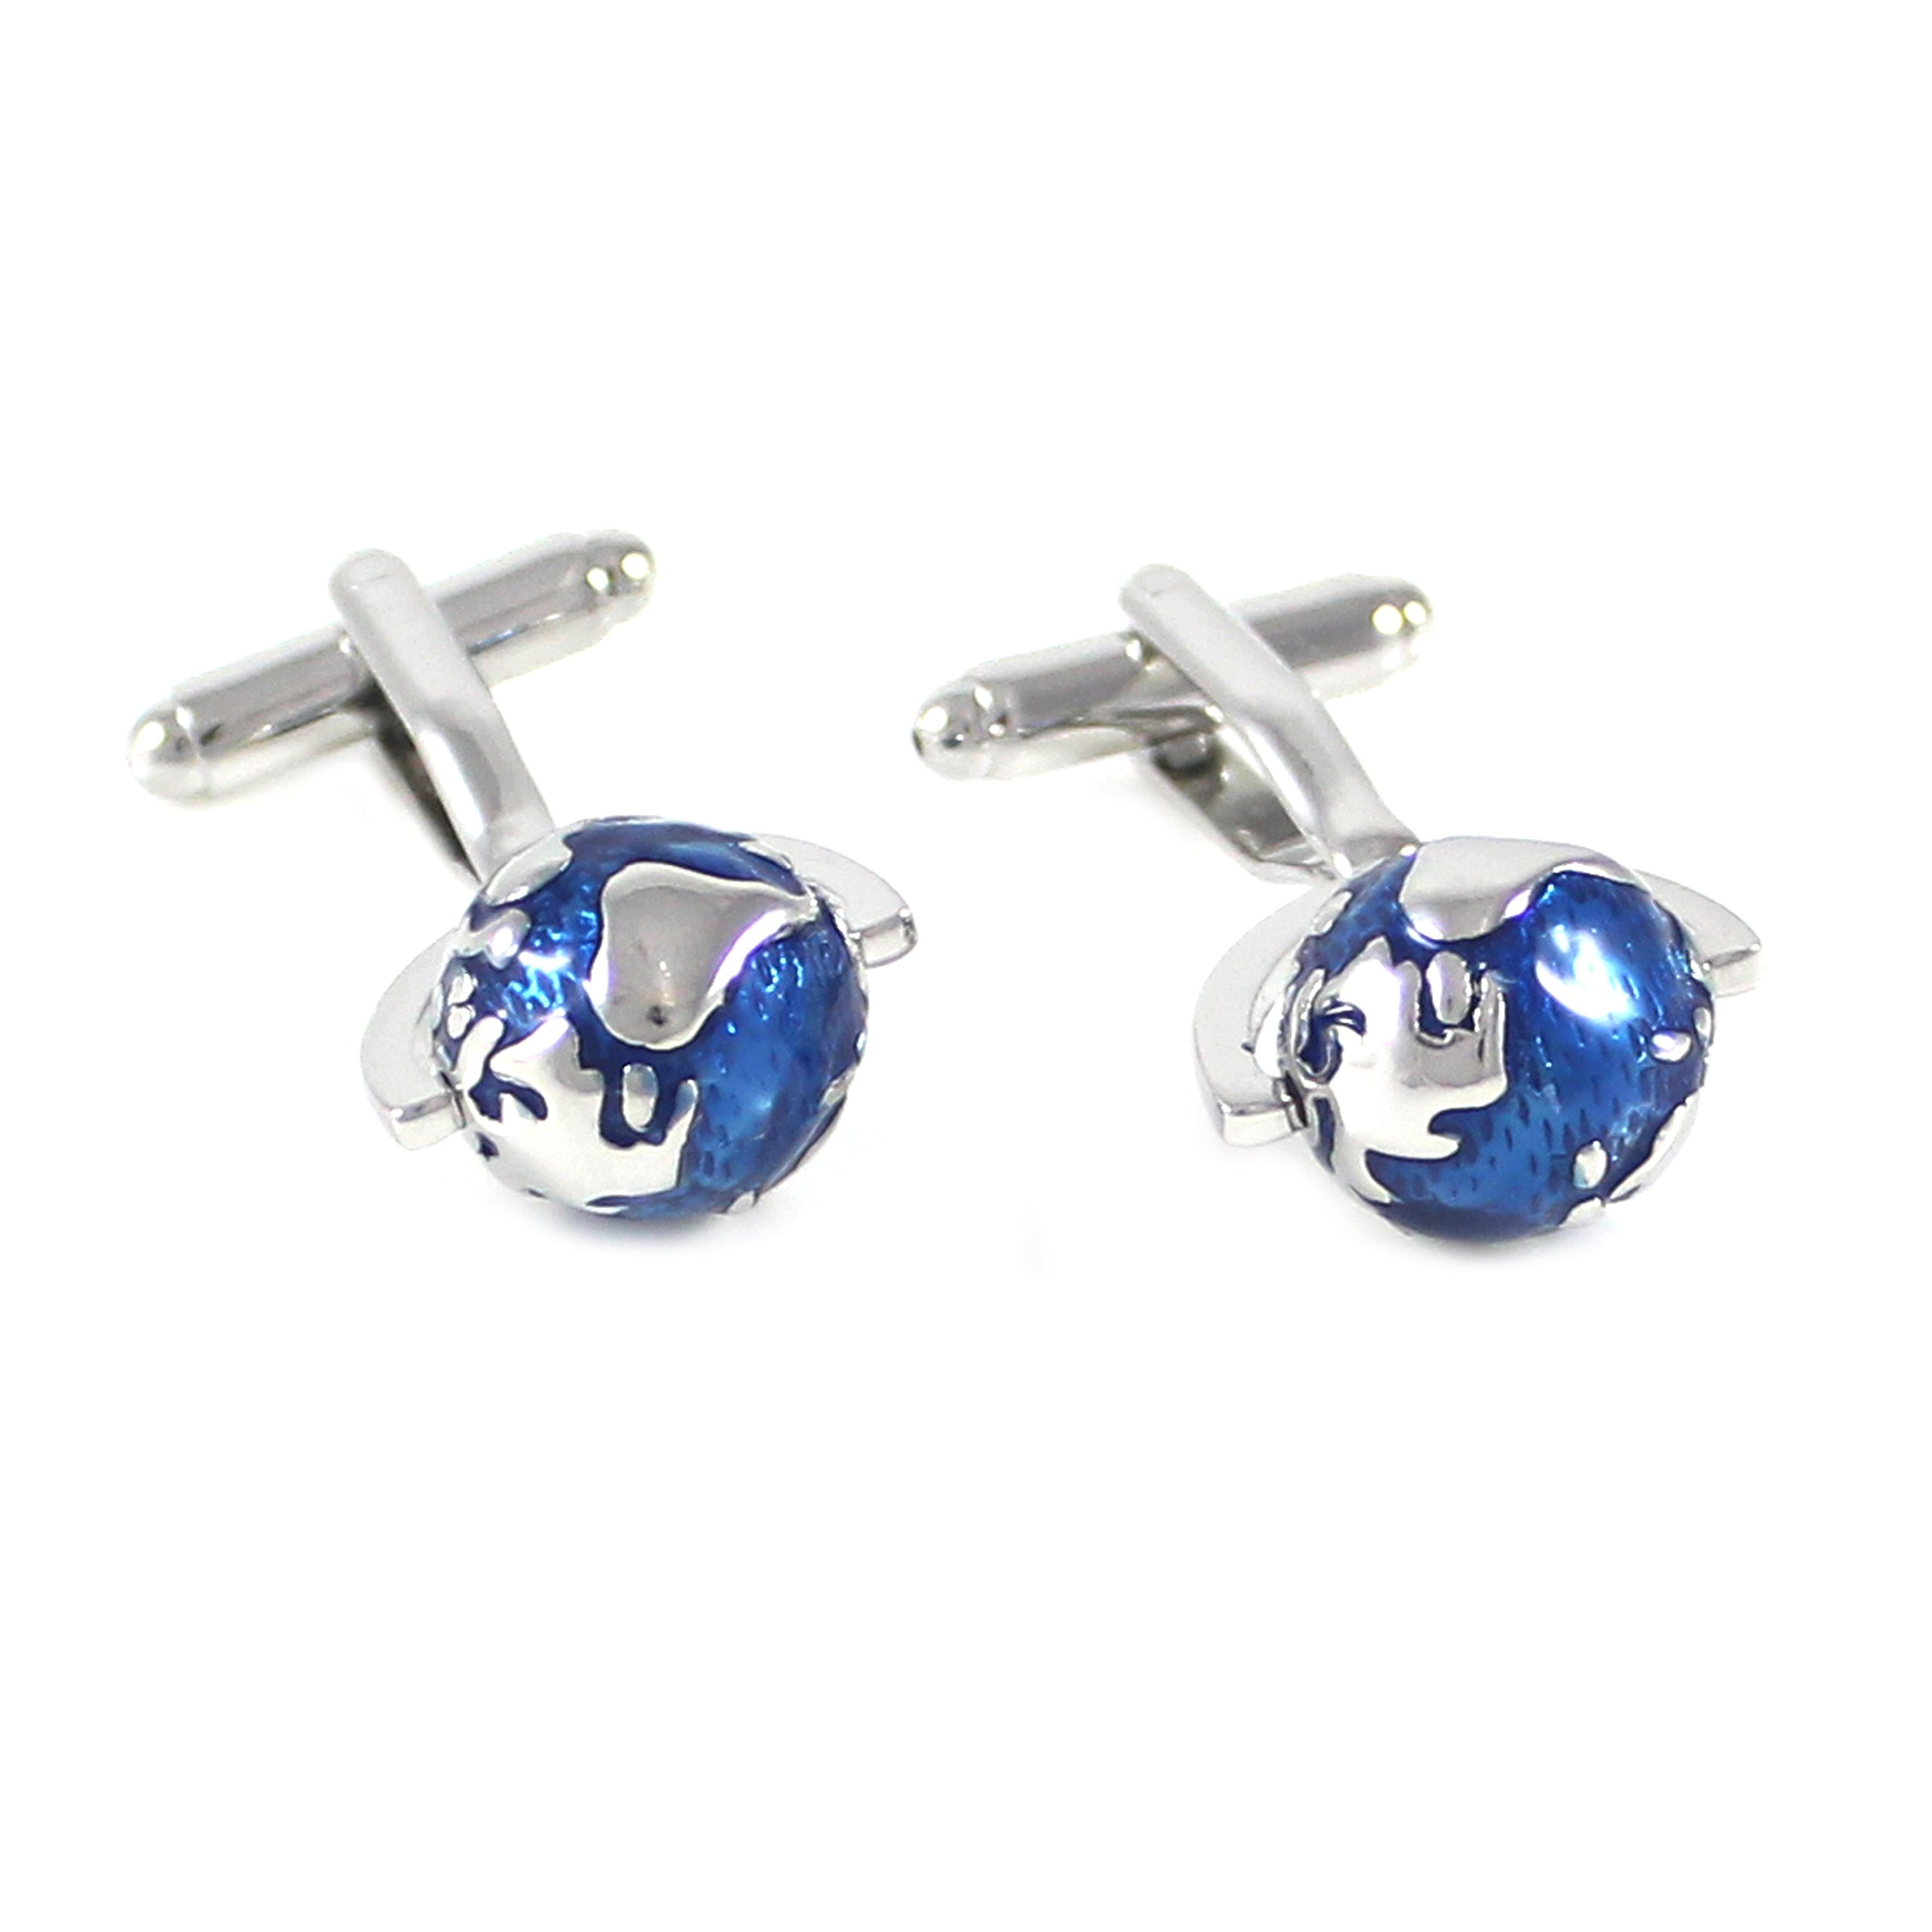 MENDEPOT Classic Rhodium Plated Blue And Silver Globe Cuff Link And Shirt Studs Formal Wear Set With Box Earth Planet Suit Set by MENDEPOT (Image #2)